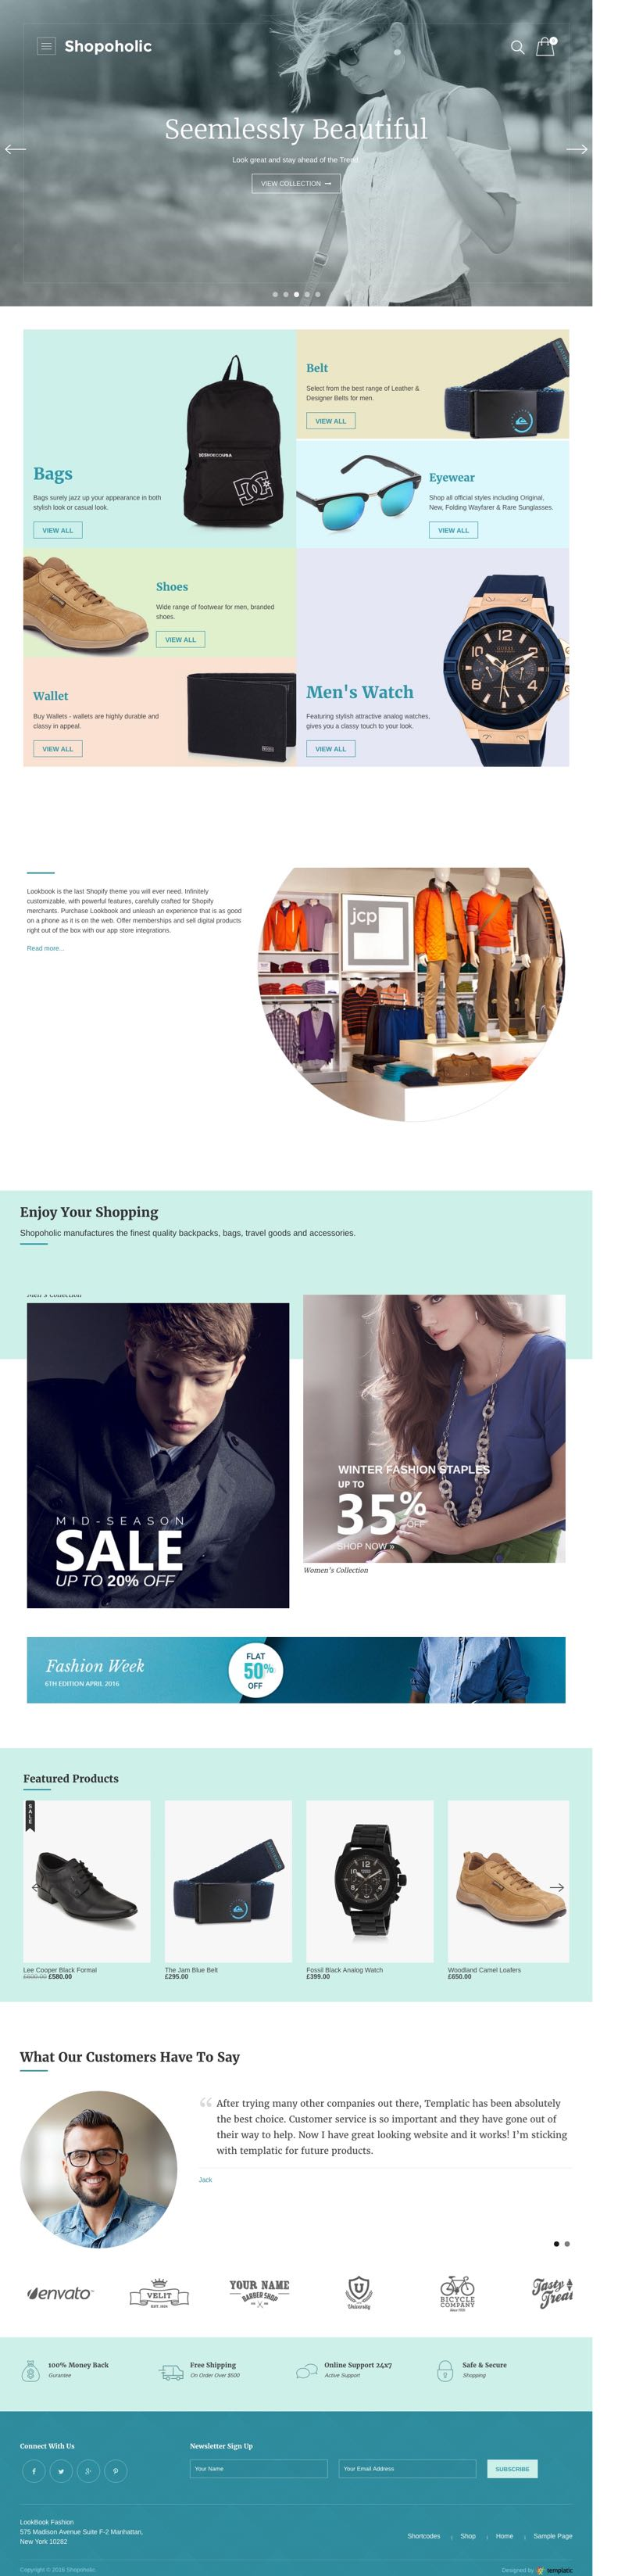 Showcase Products By Categories in Shopoholic Theme